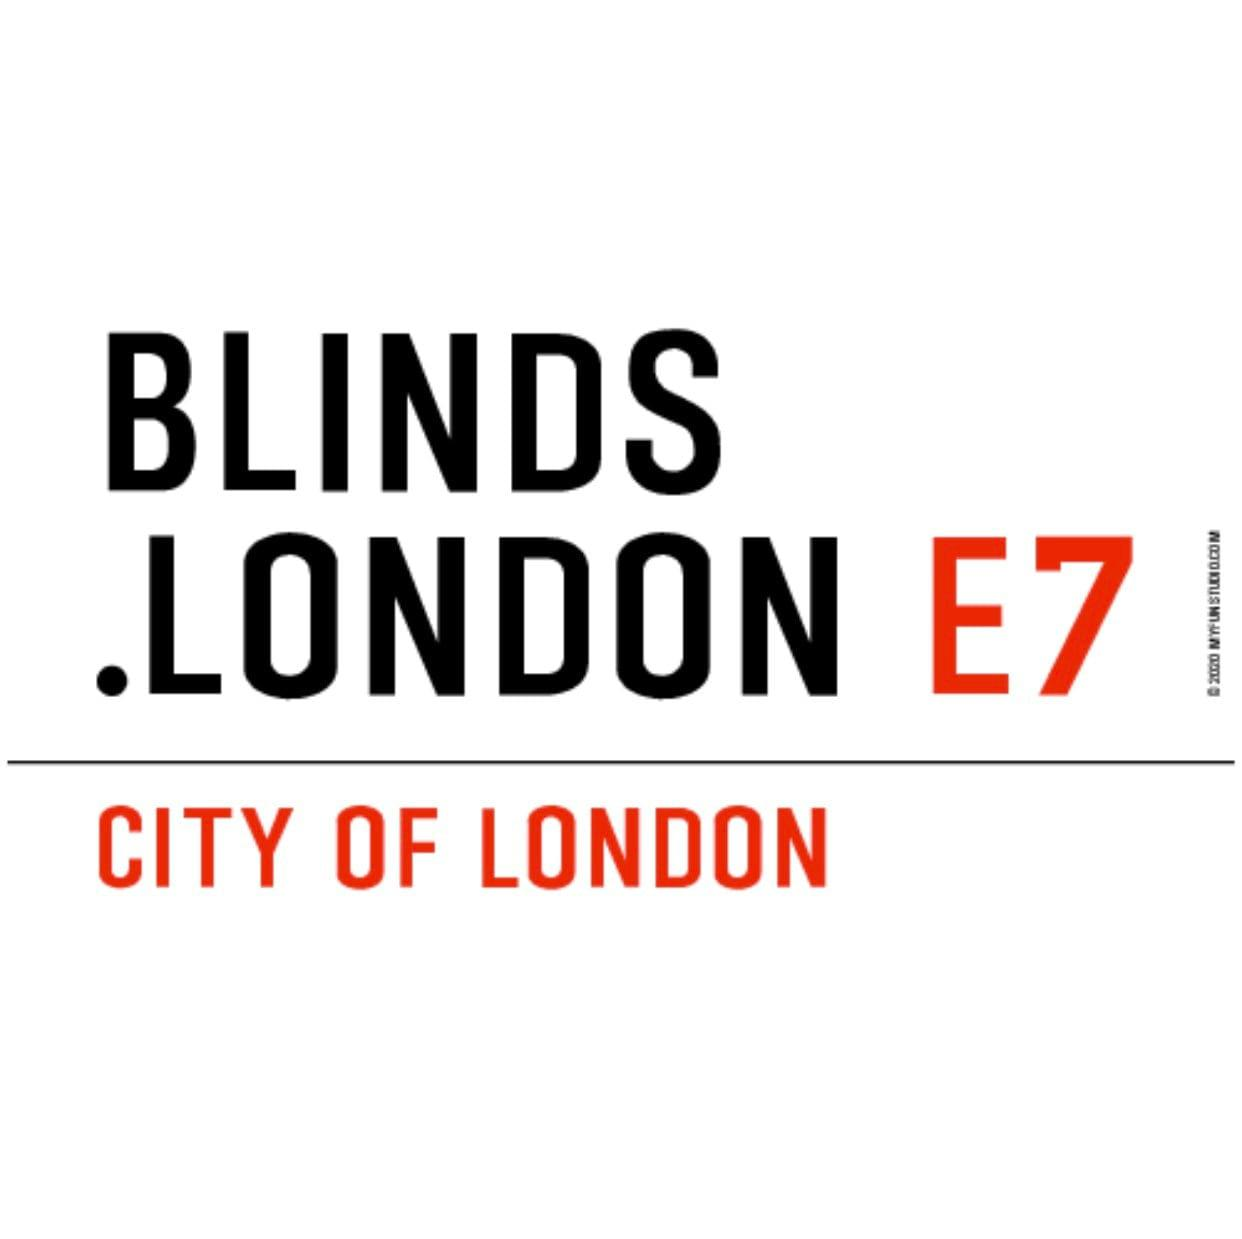 Blinds in London